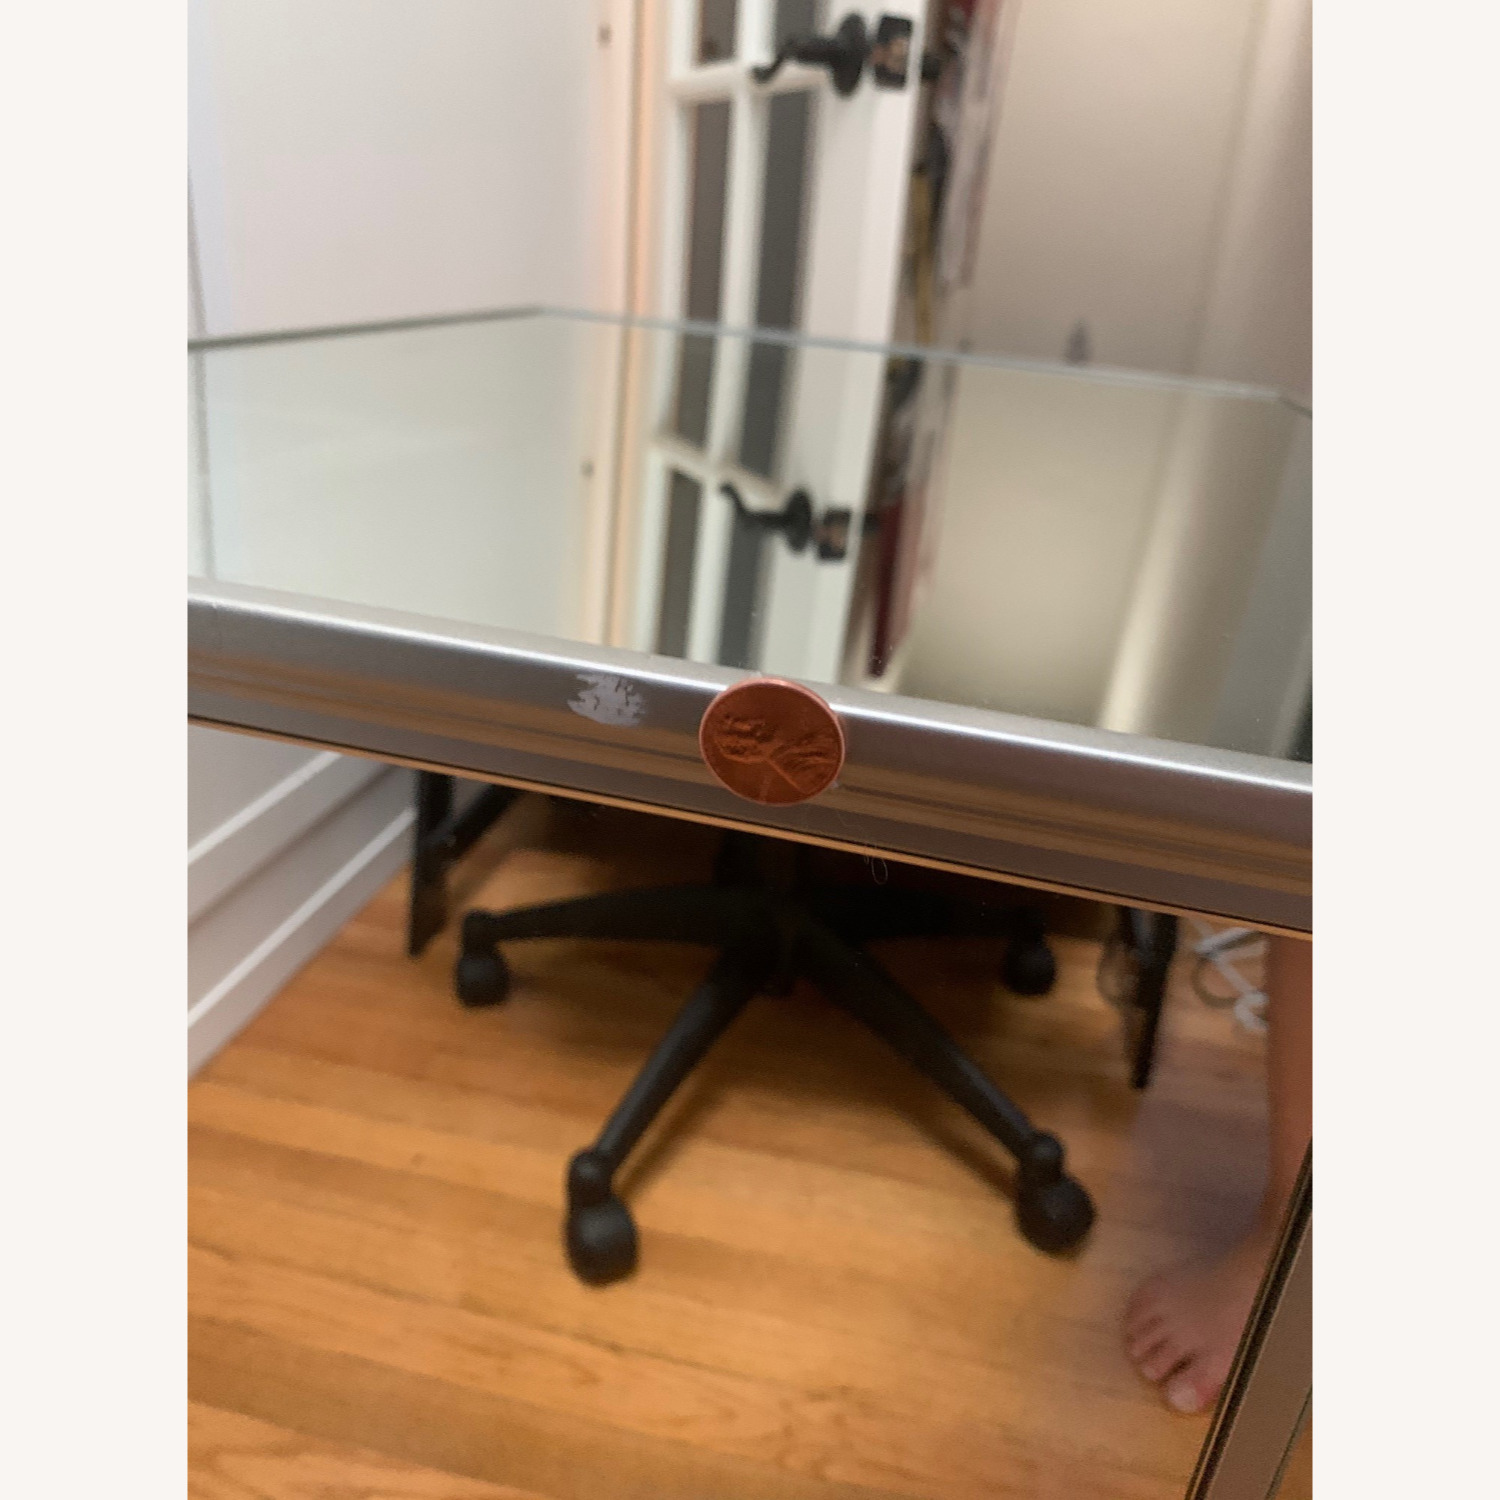 Pottery Barn Mirrored Bedside Tables - image-5